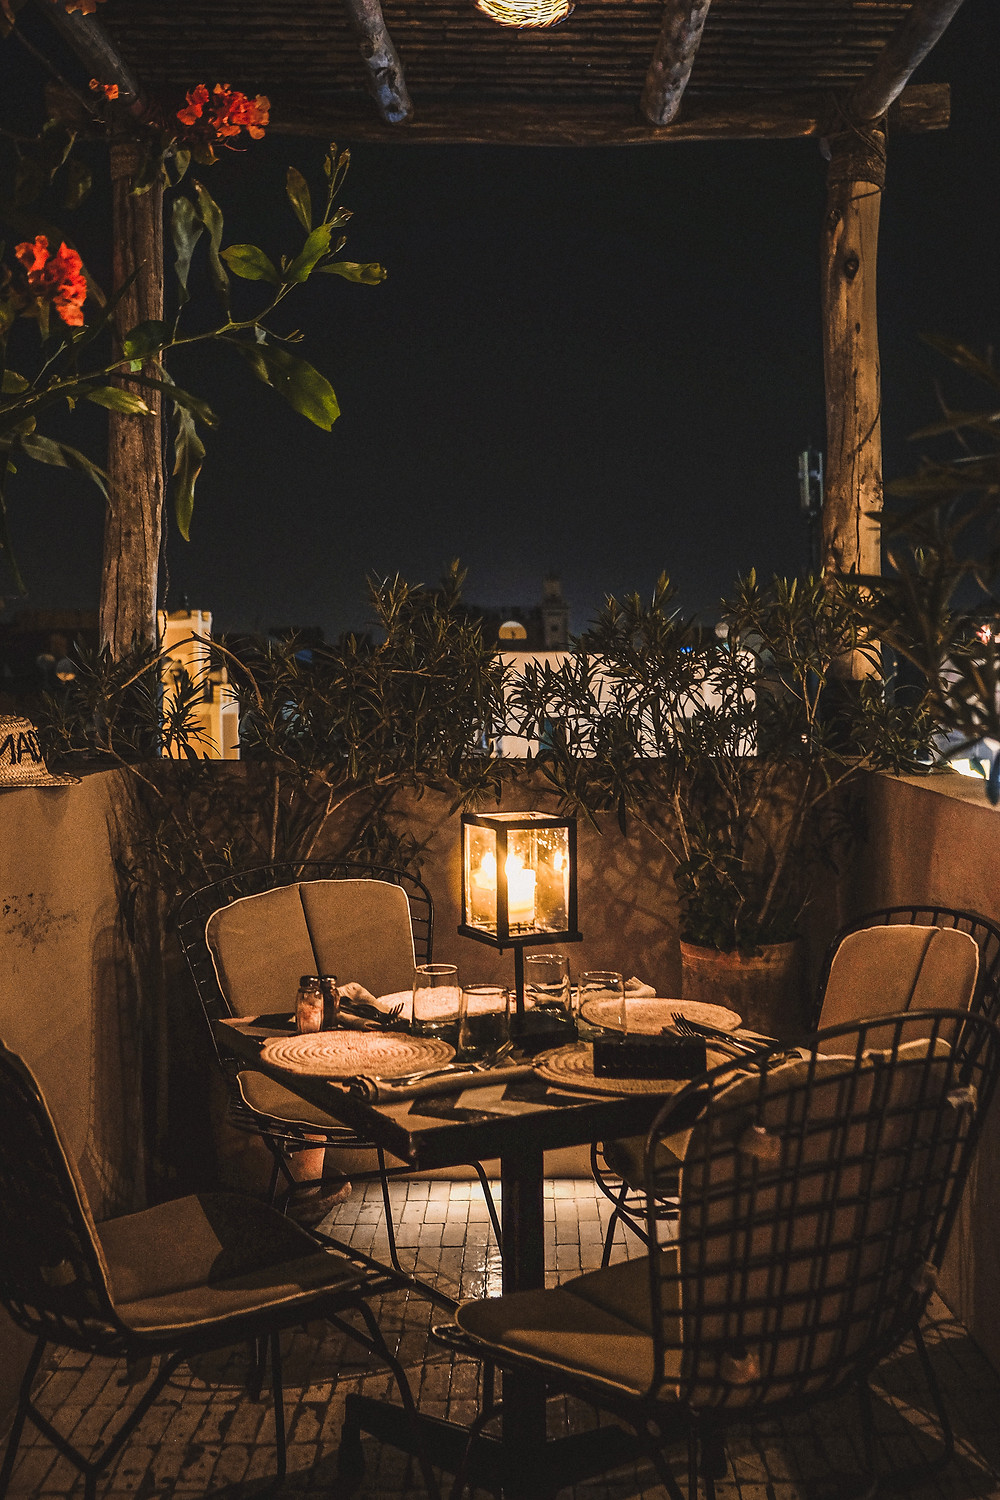 Candlelit dinner table, rustic chic furniture of Nomad, Marrakech | RollingBear Travels